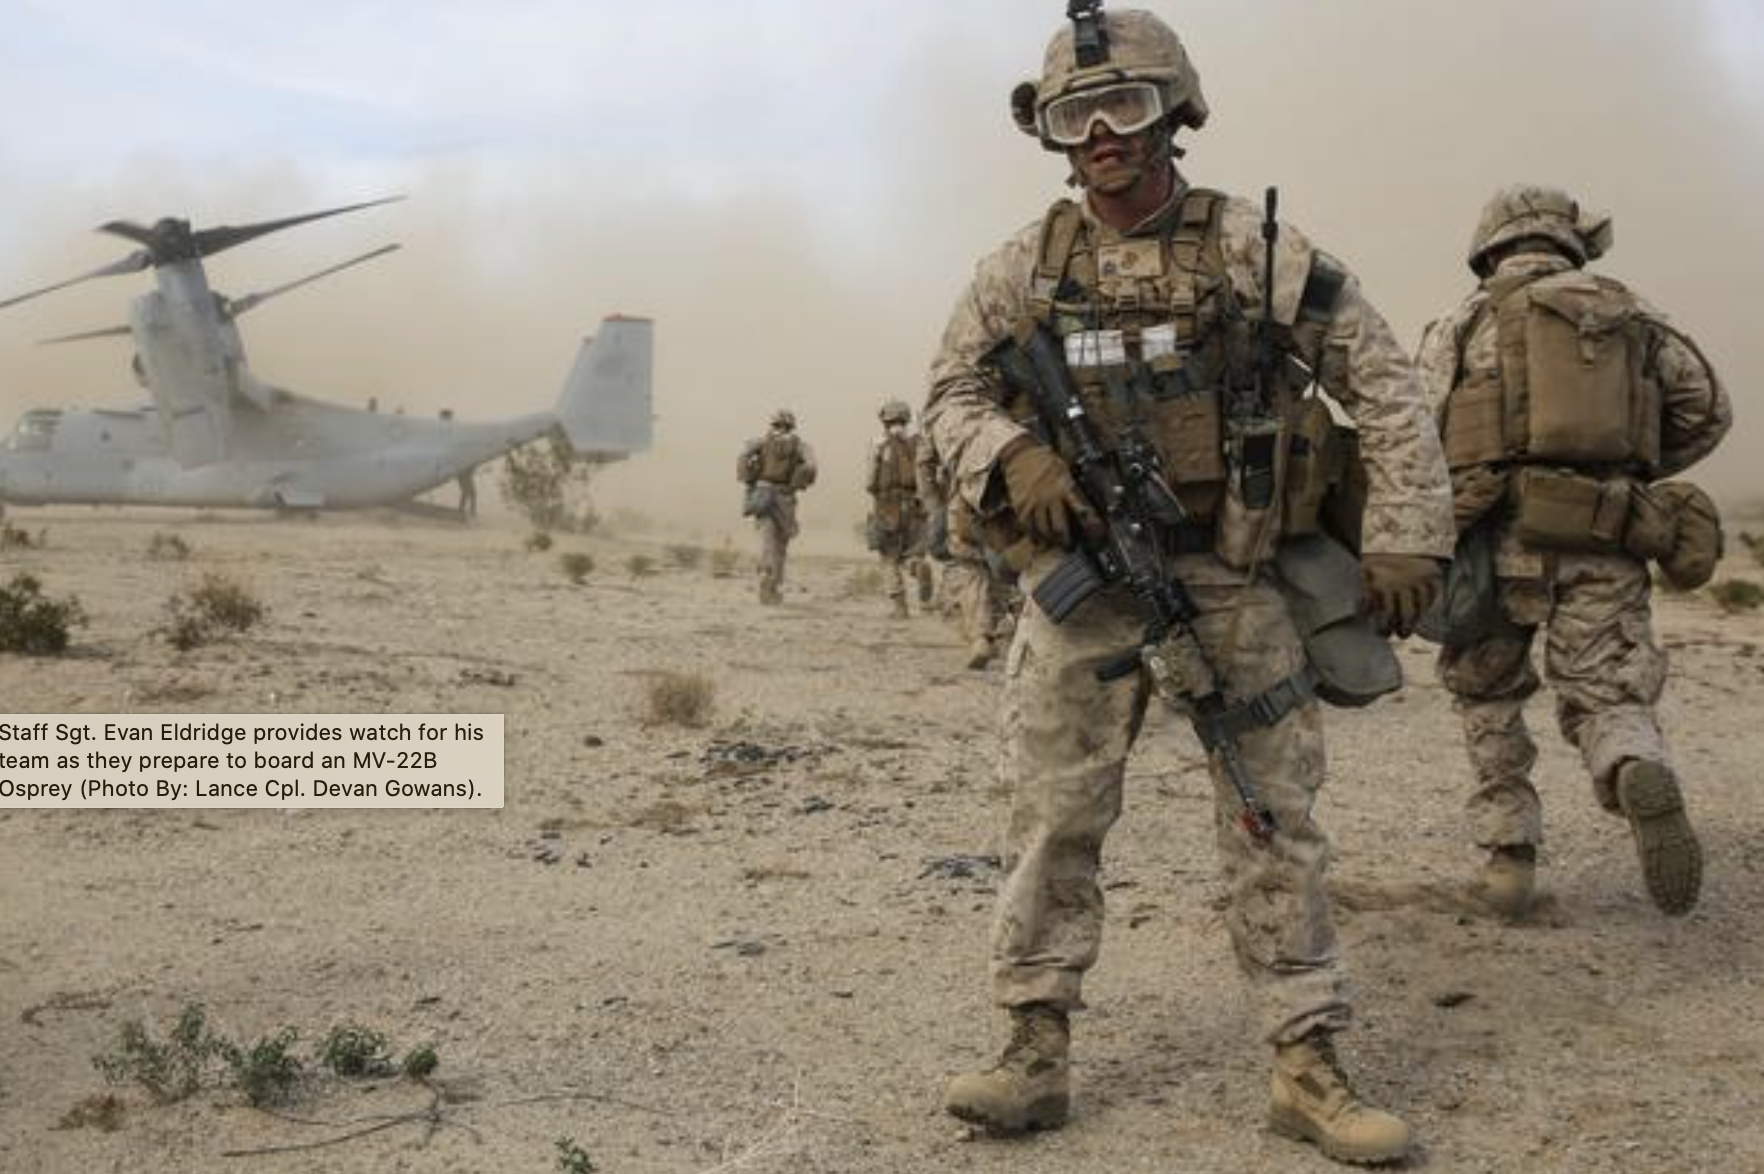 12 U.S. Marines and Soldier Killed as a Result of Biden's 'Weakness'